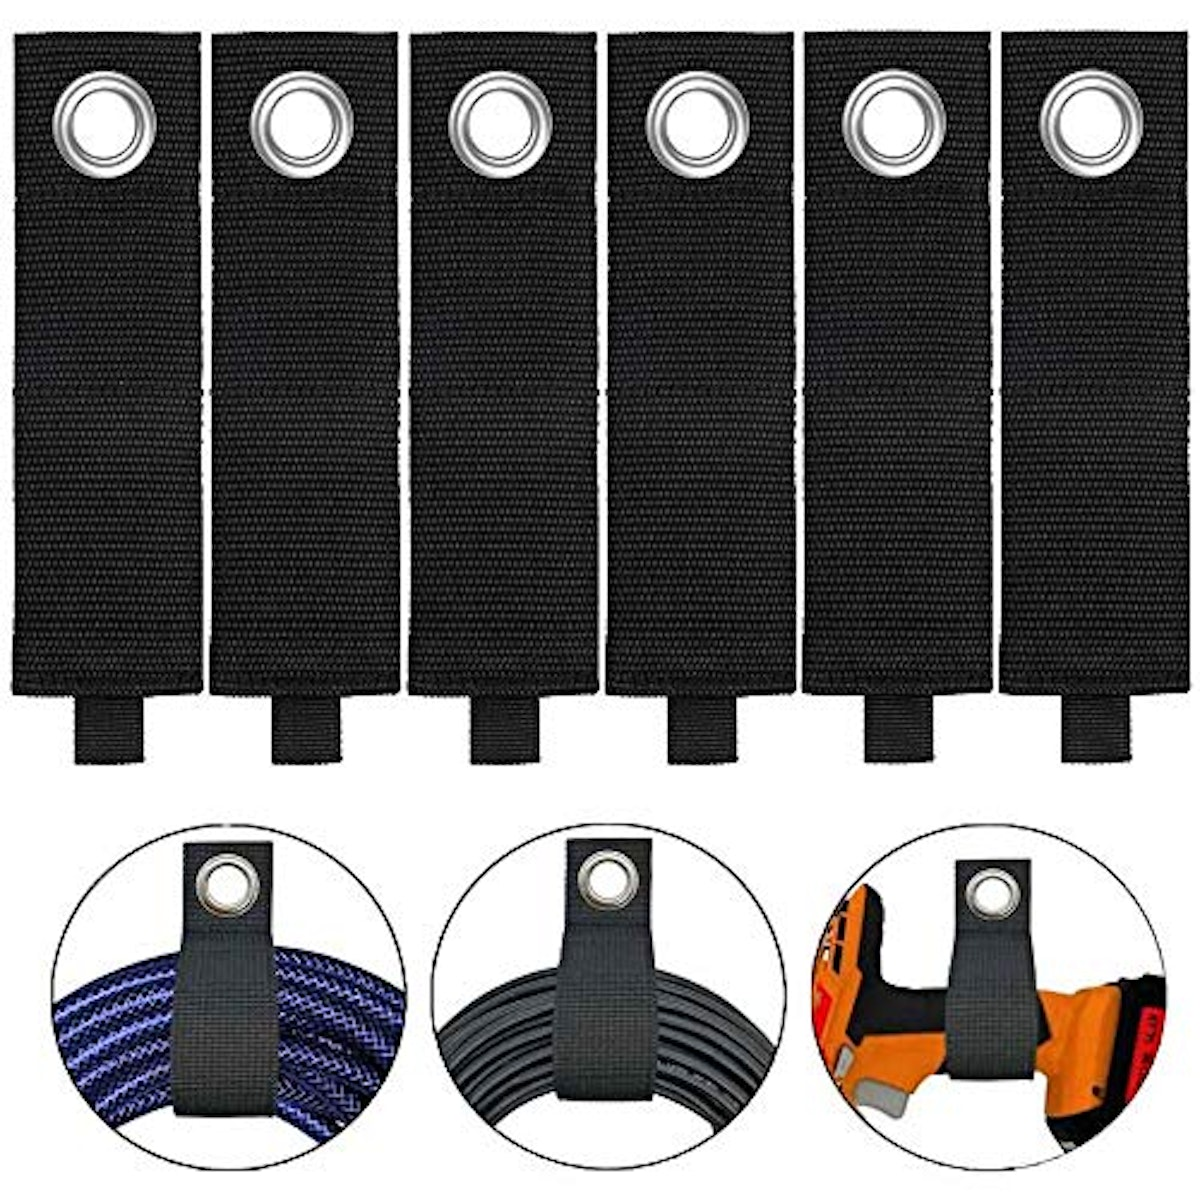 LuxuryScreenProtector Extension Cord Organizer (6-Pack)